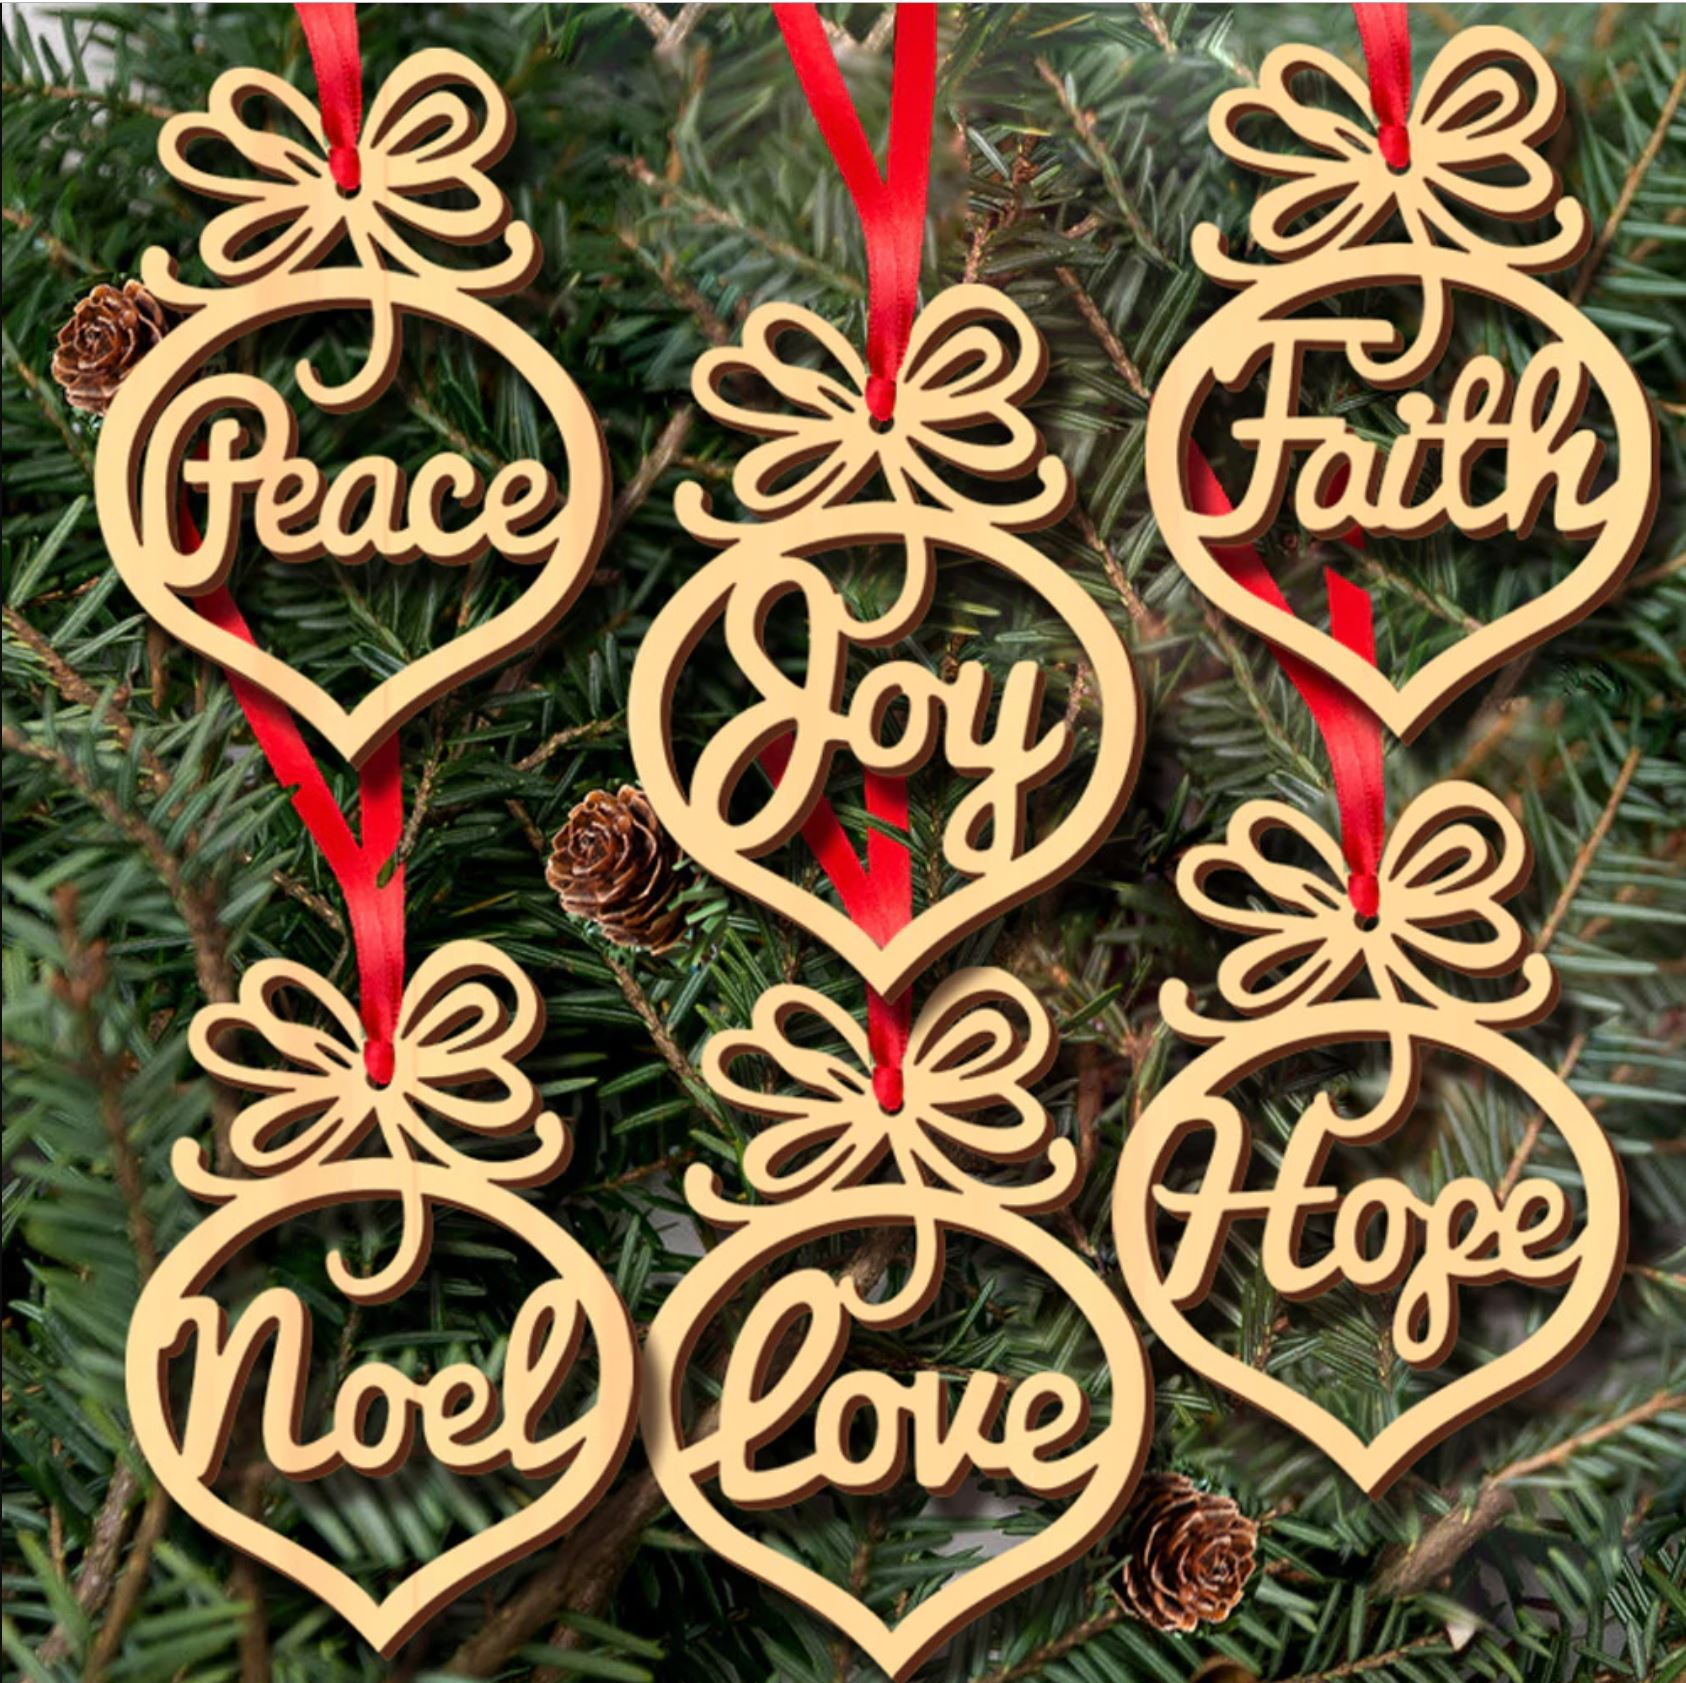 Wooden Religious Christmas Tree Ornament 6 Pack Online Party Supplies